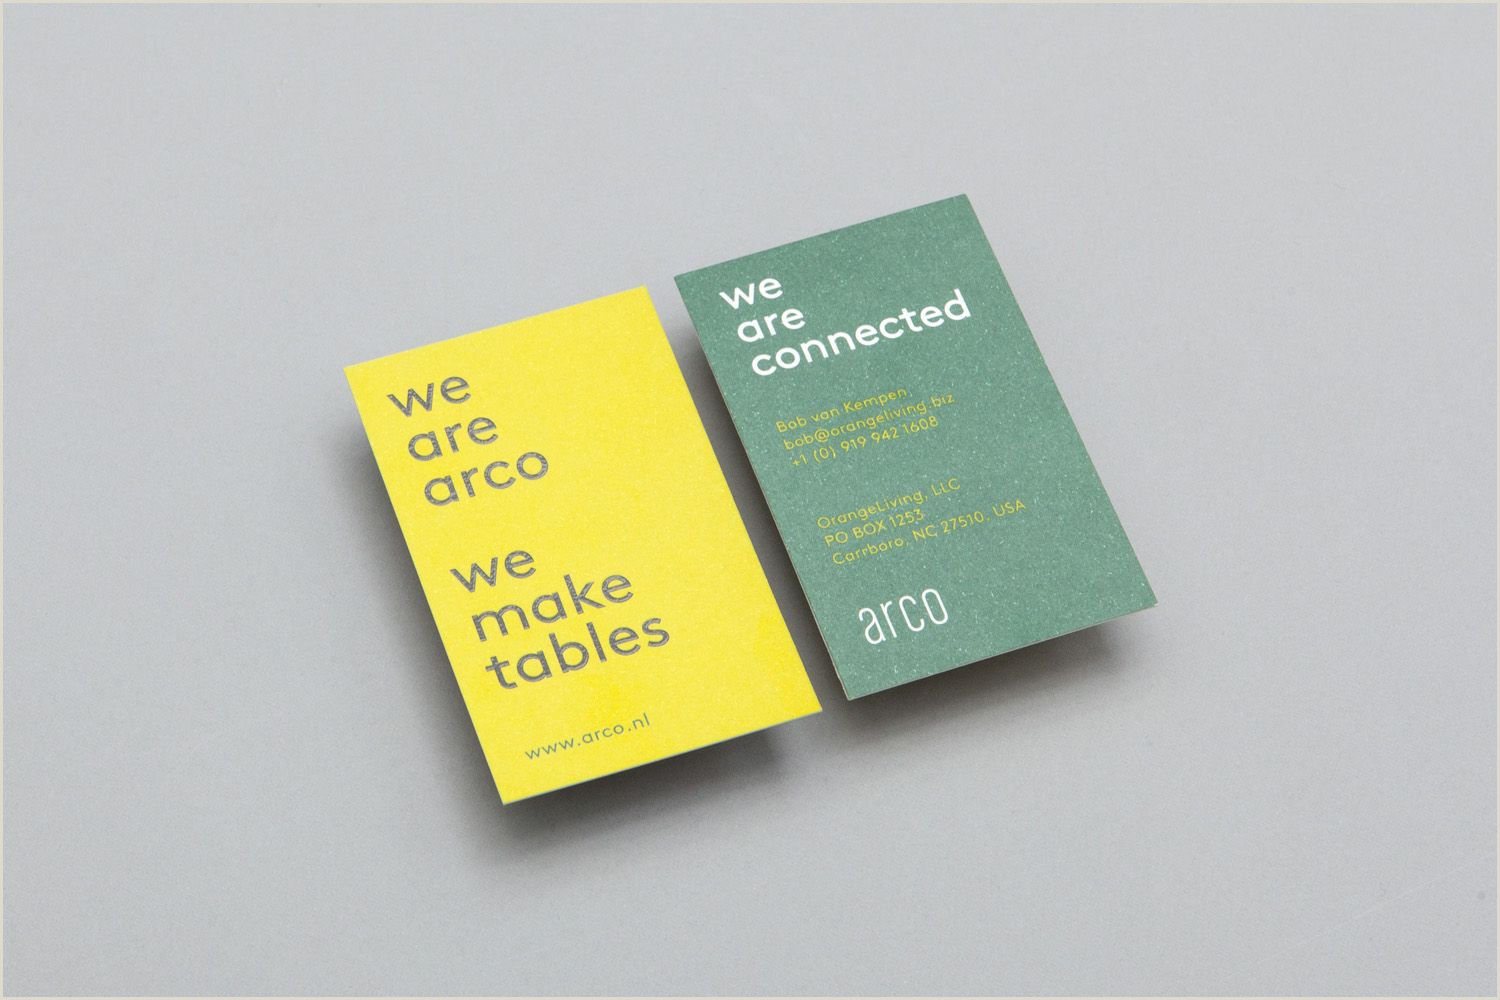 This Designer Designed These Unique Business Cards With Photos New Brand Identity For Arco By Raw Color — Bp&o